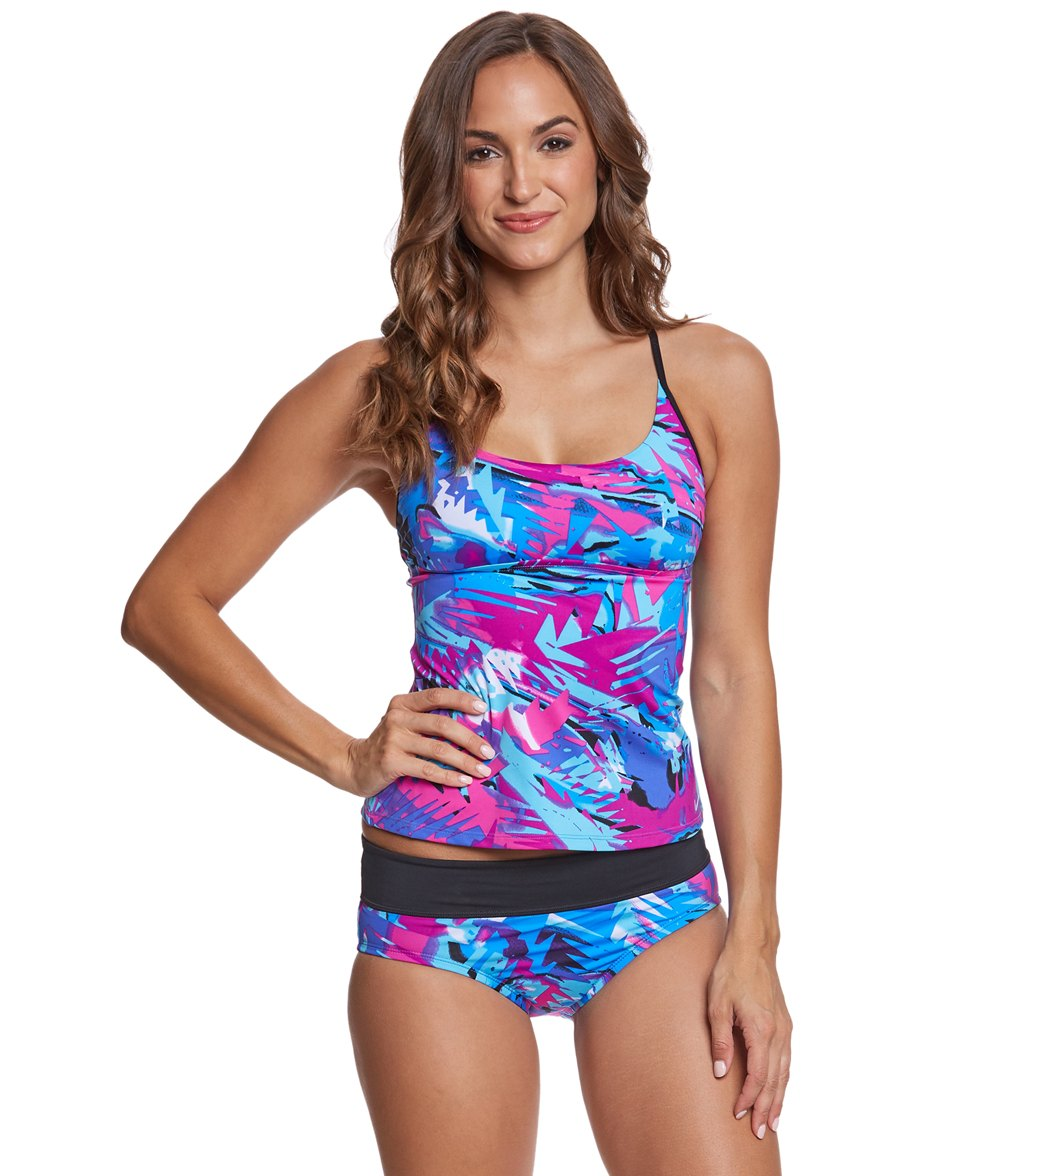 ceadcecad16c9 ... Nike Tropic Crossback Tankini Top. Play Video. MODEL MEASUREMENTS